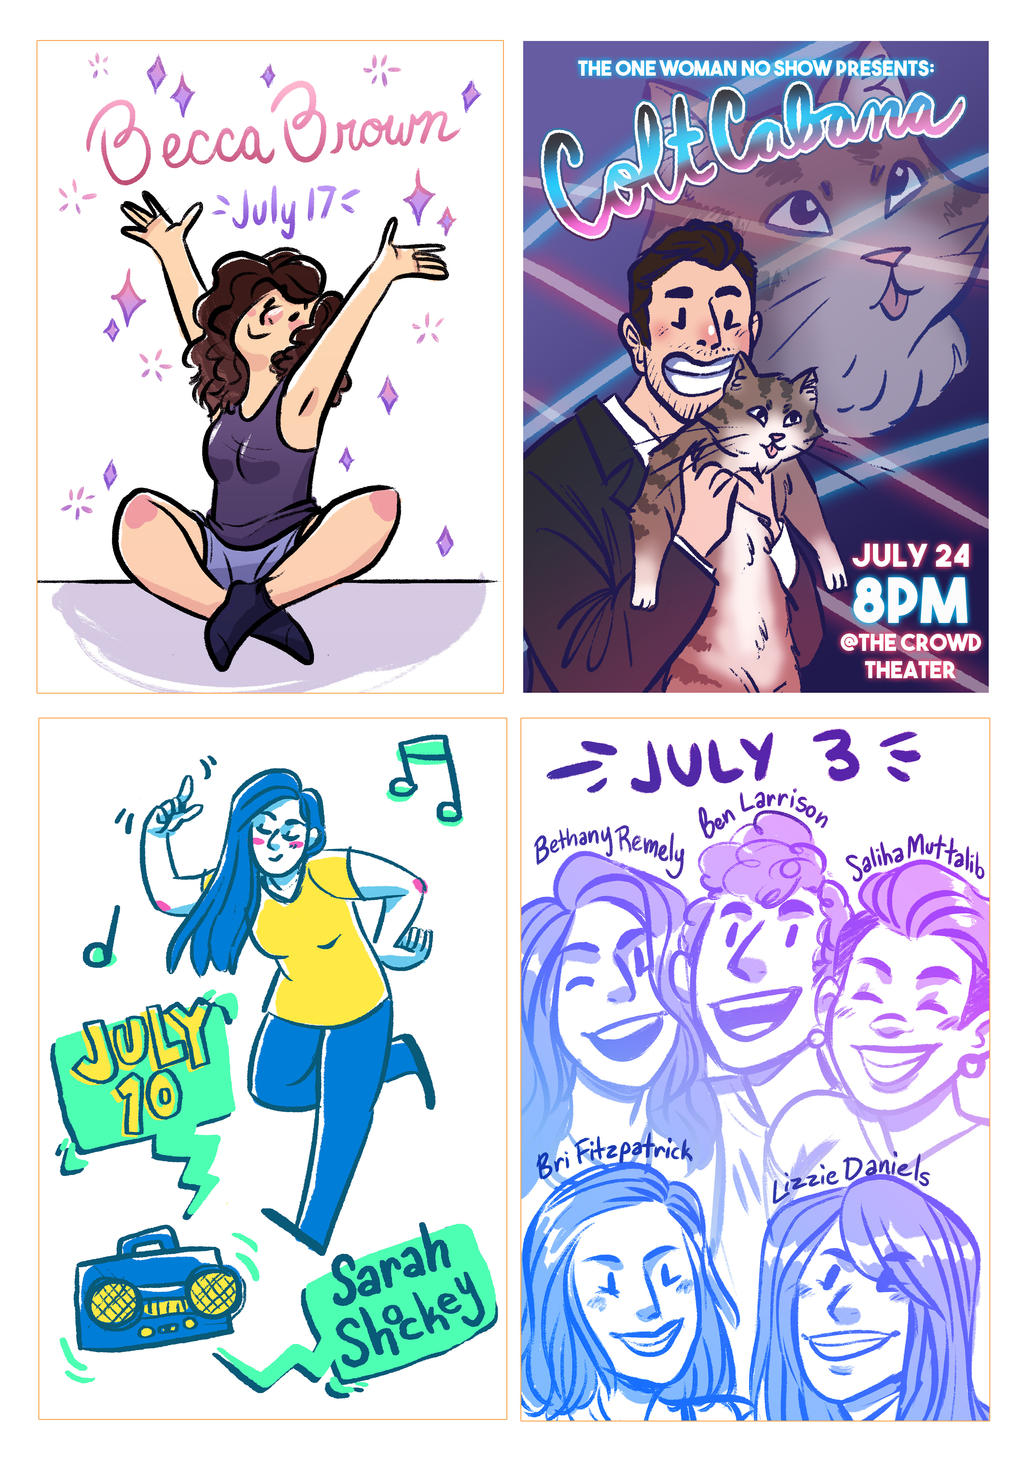 One Woman No Show Performer Posters by AngryArtist113